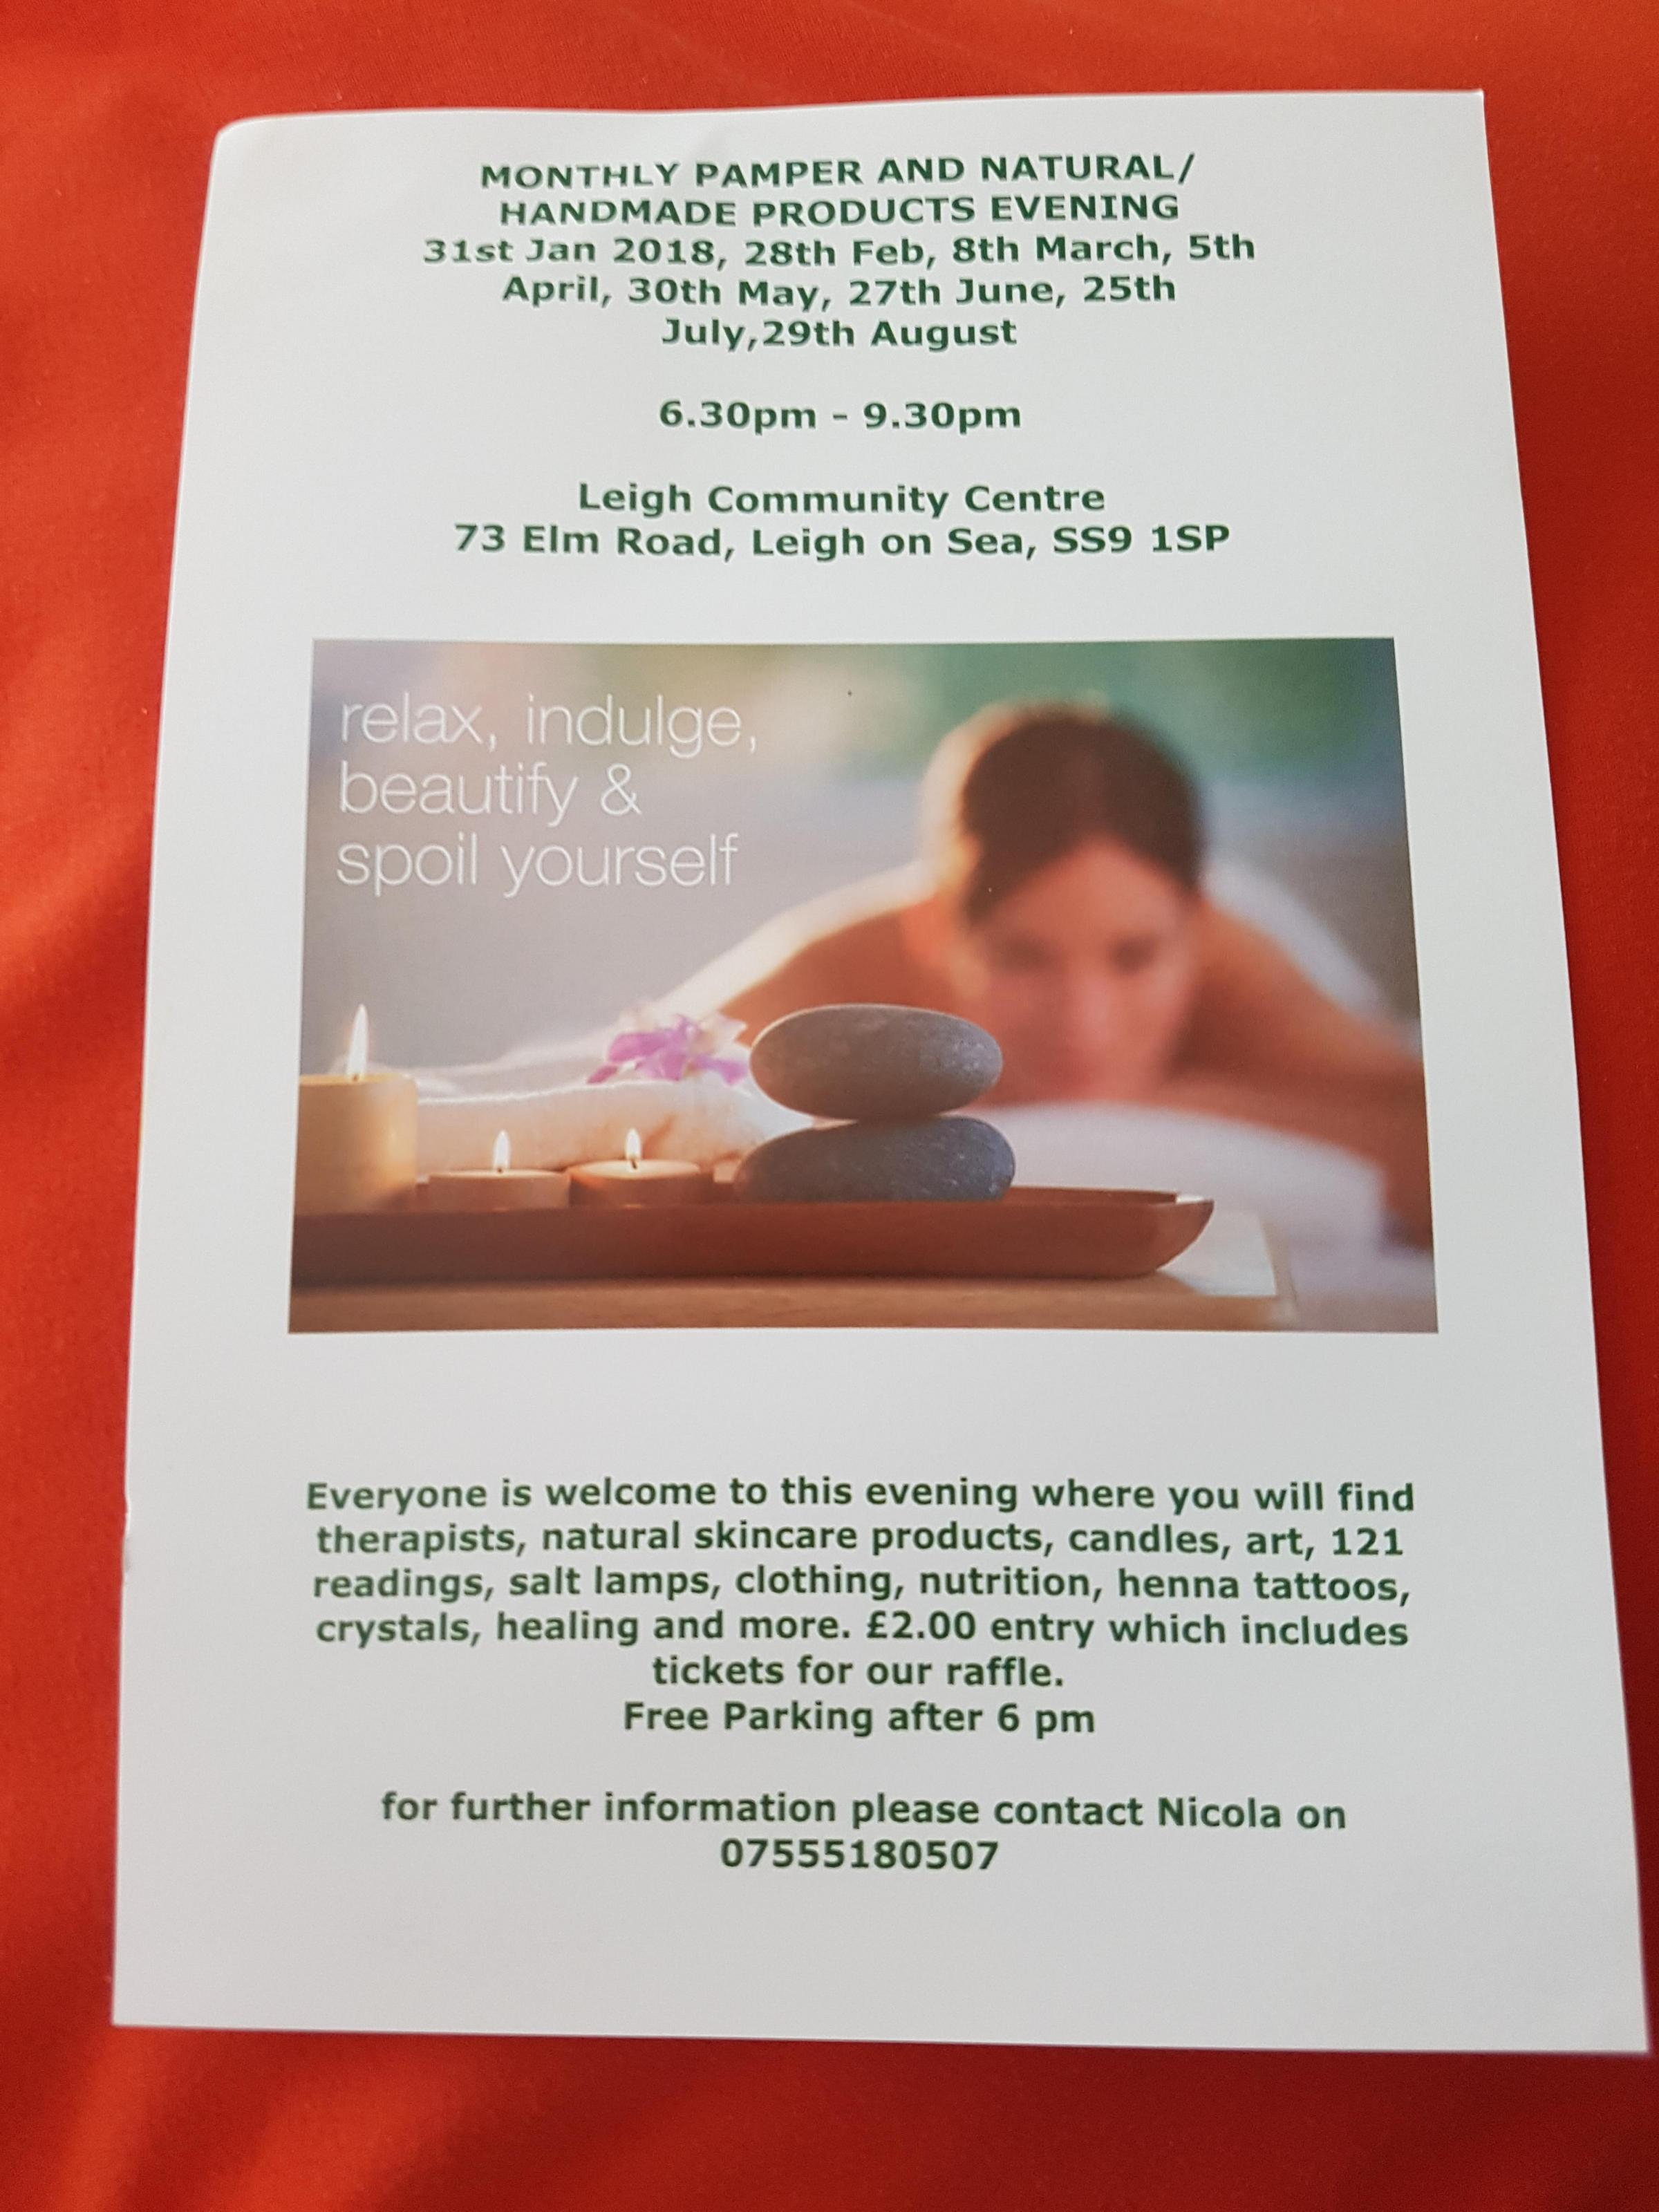 Pamper and Natural stall holders Evening